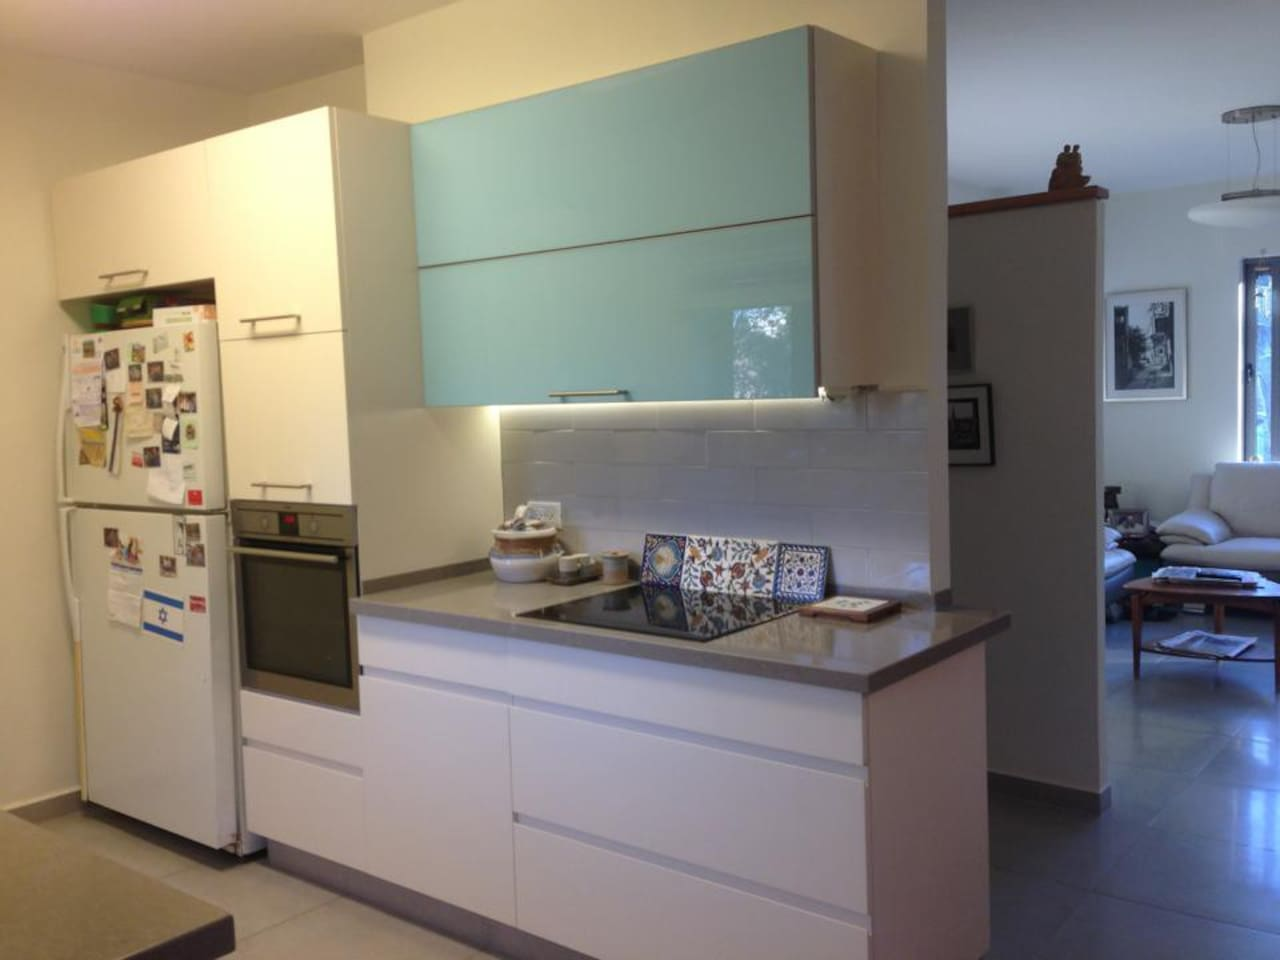 Recently renovated kitchen  including stove top, oven and dishwasher.